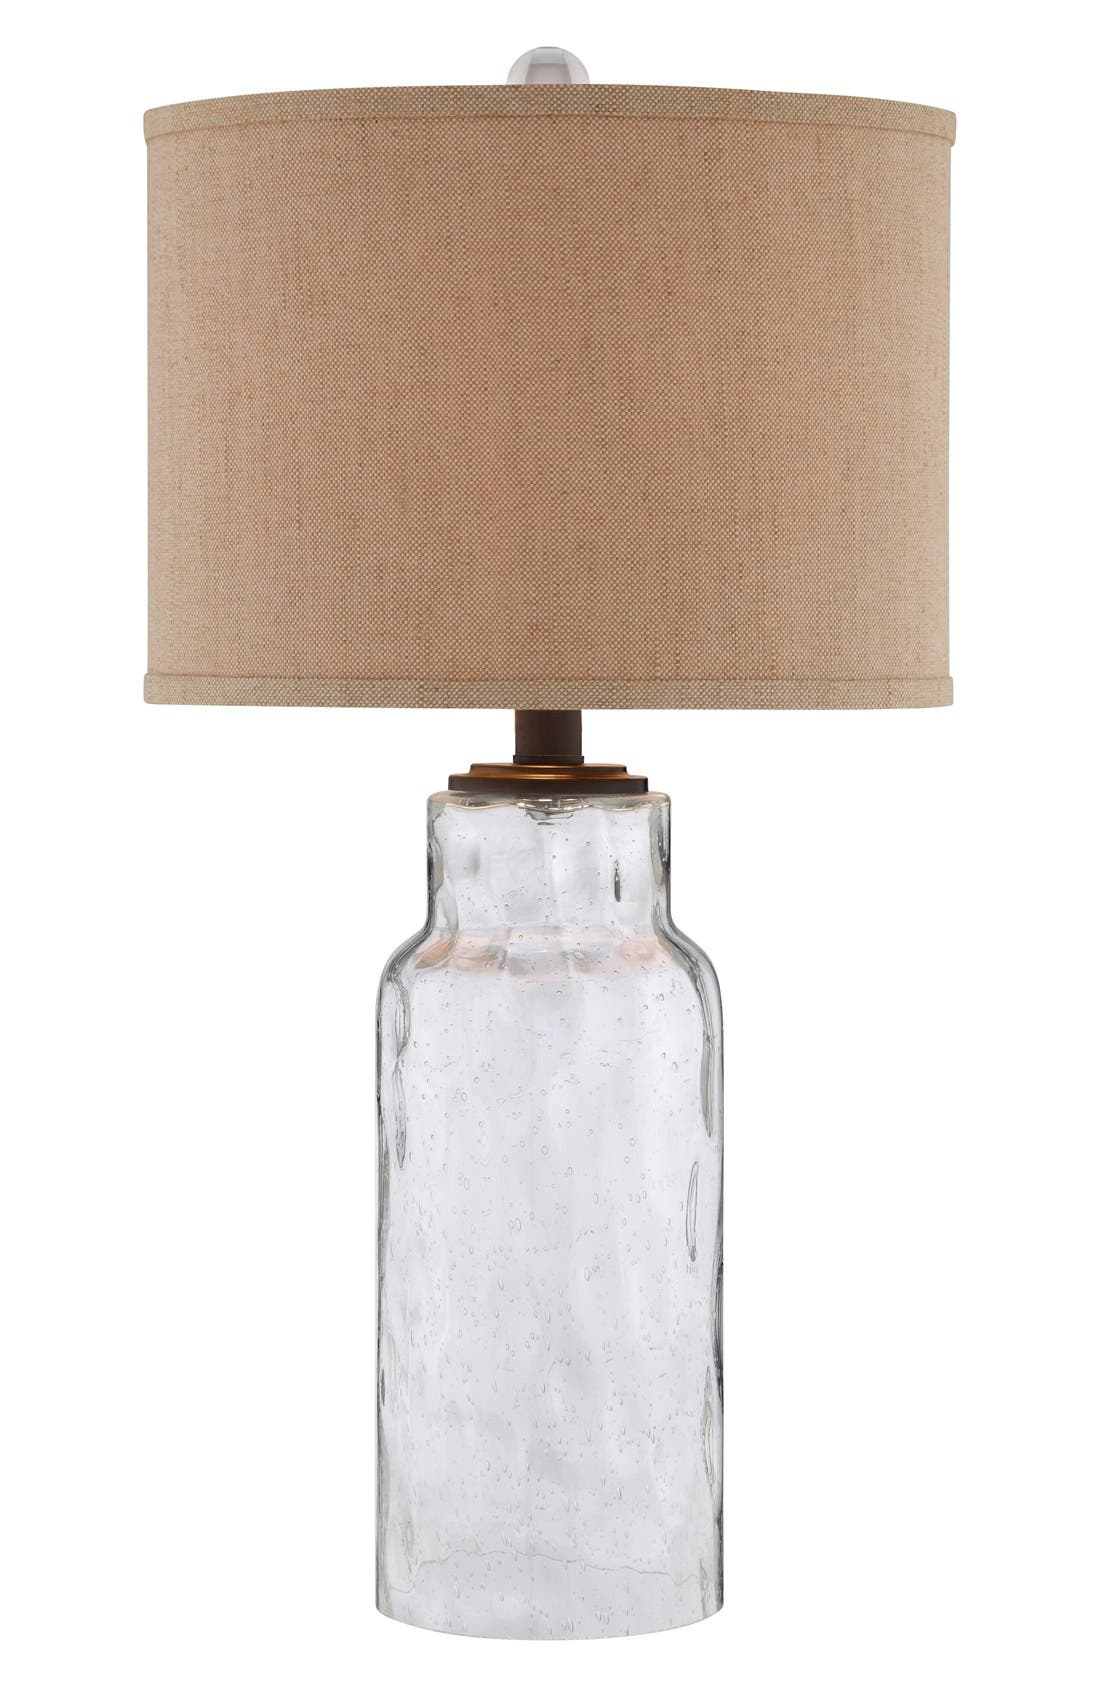 Main Image - JAlexander Lighting Clear Dimpled Glass Table Lamp